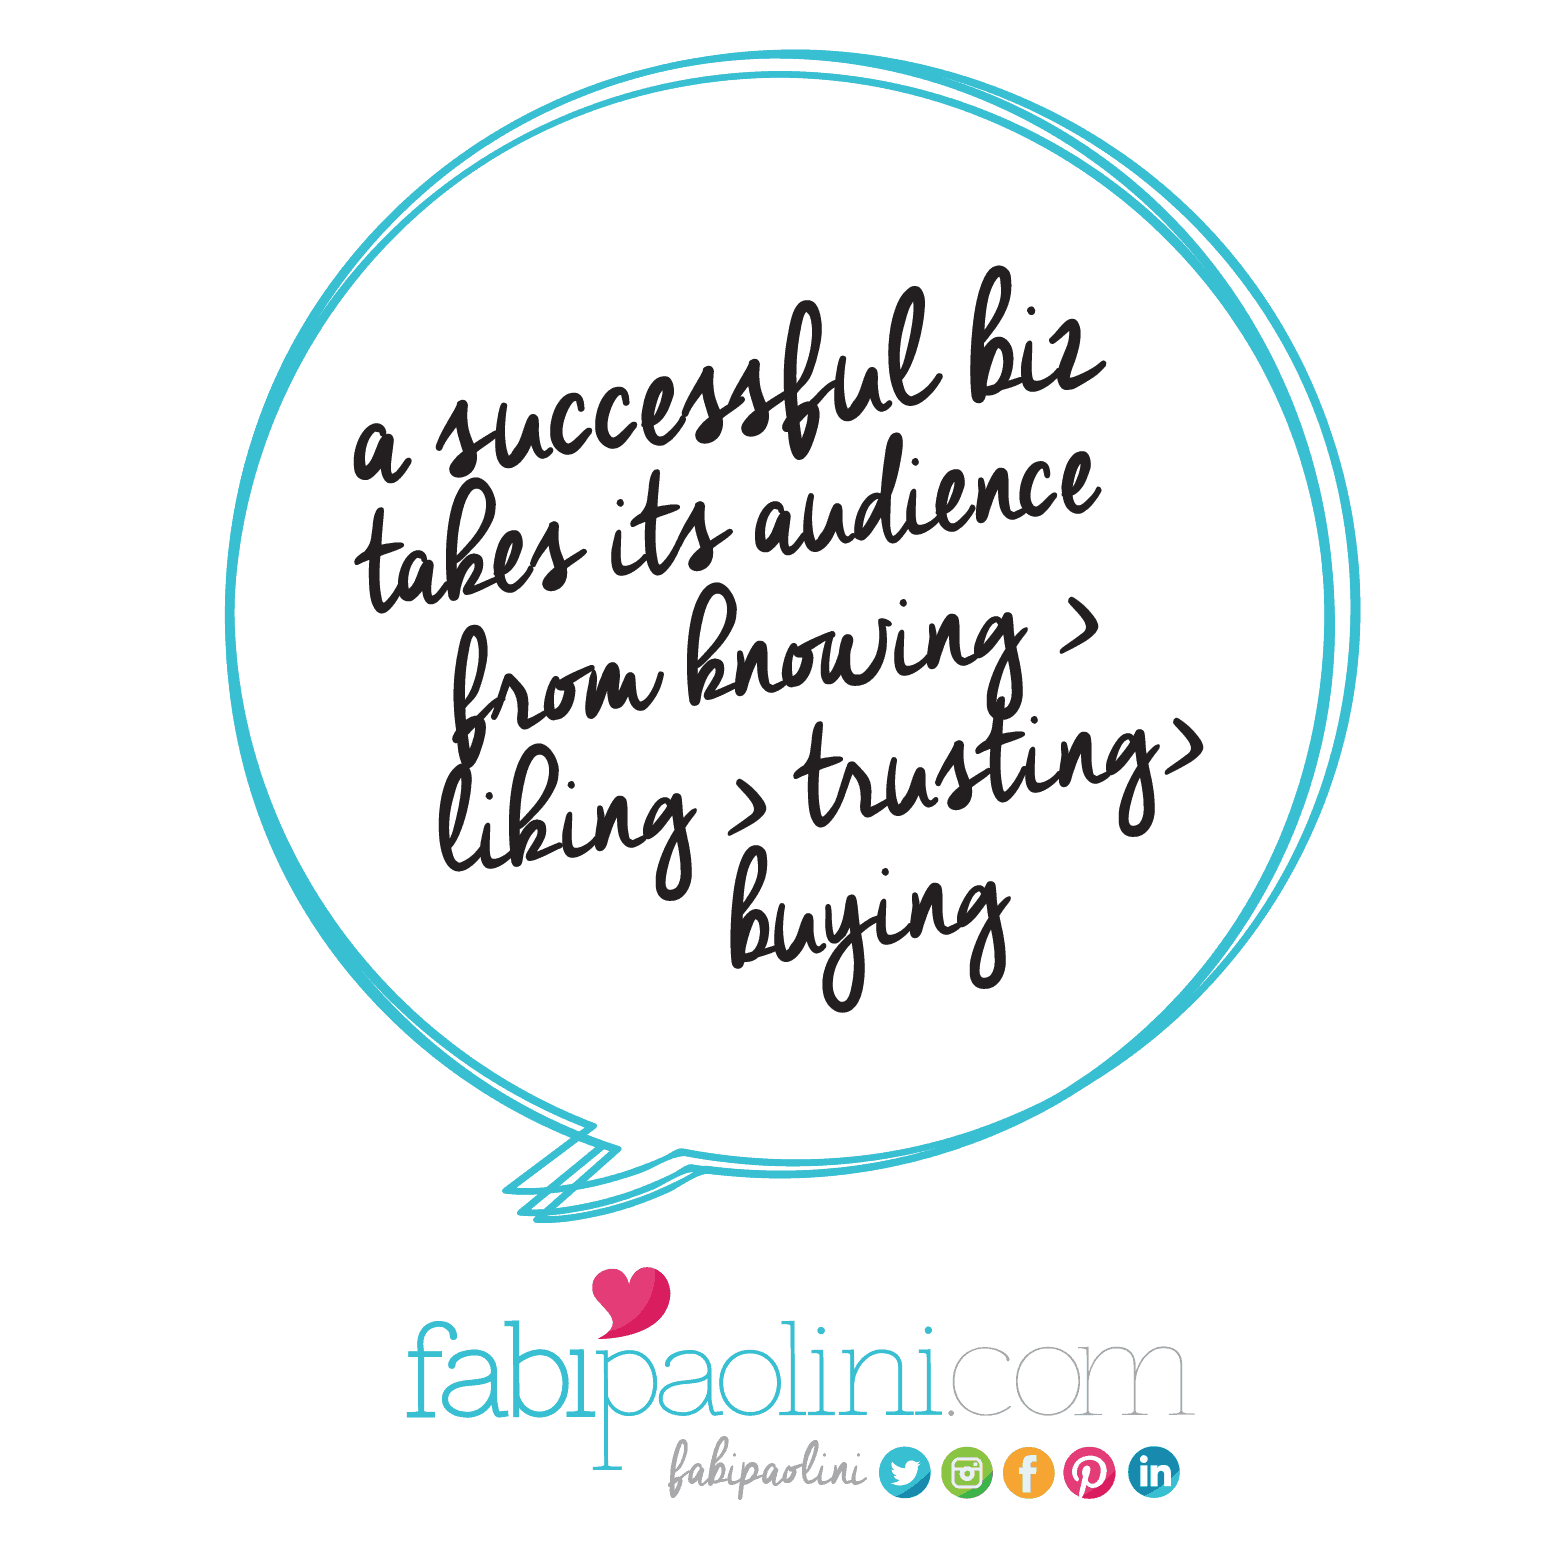 A successful business takes its audience from knowing > liking > trusting > buying. Branding tips and ideas.